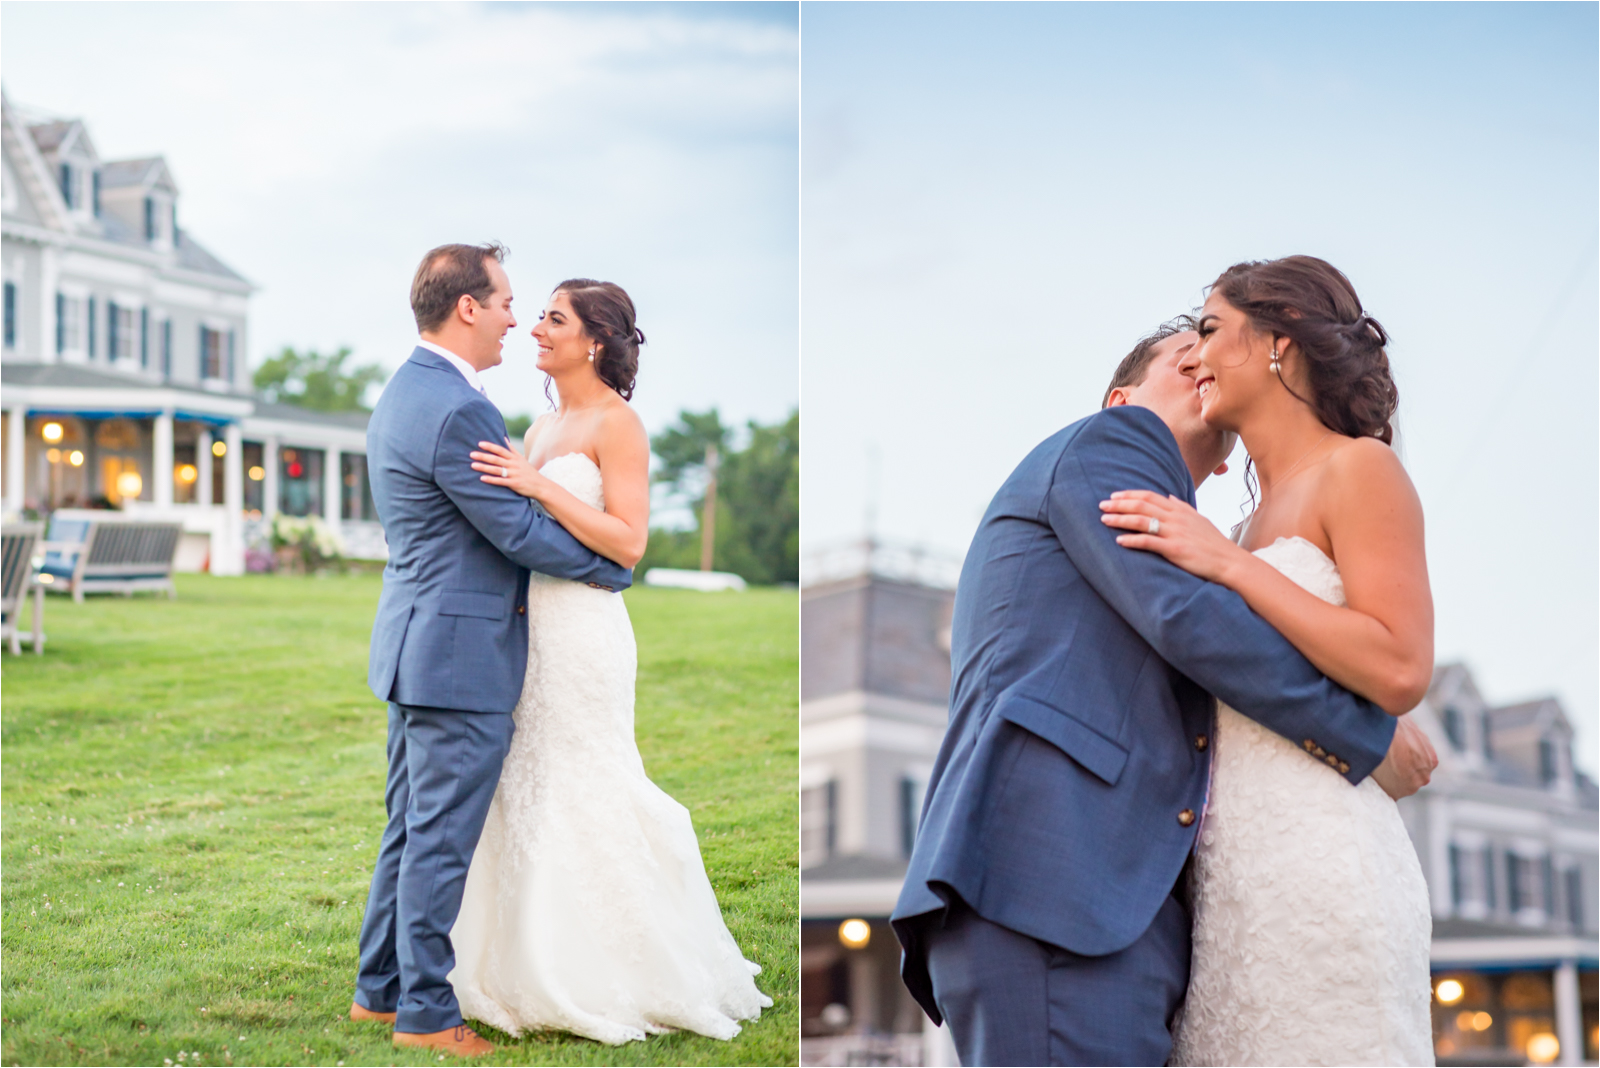 wedding-photography-gresalfi-nejbauer-oyster-bay-long-island-new-york-seawanhaka-yacht-club-wedding-yachtclubwedding-yacht club wedding-bride-and-groom-sunset-portraits-focus-on-joy-photography-jessica-capozzola-richmond-virginia-rva